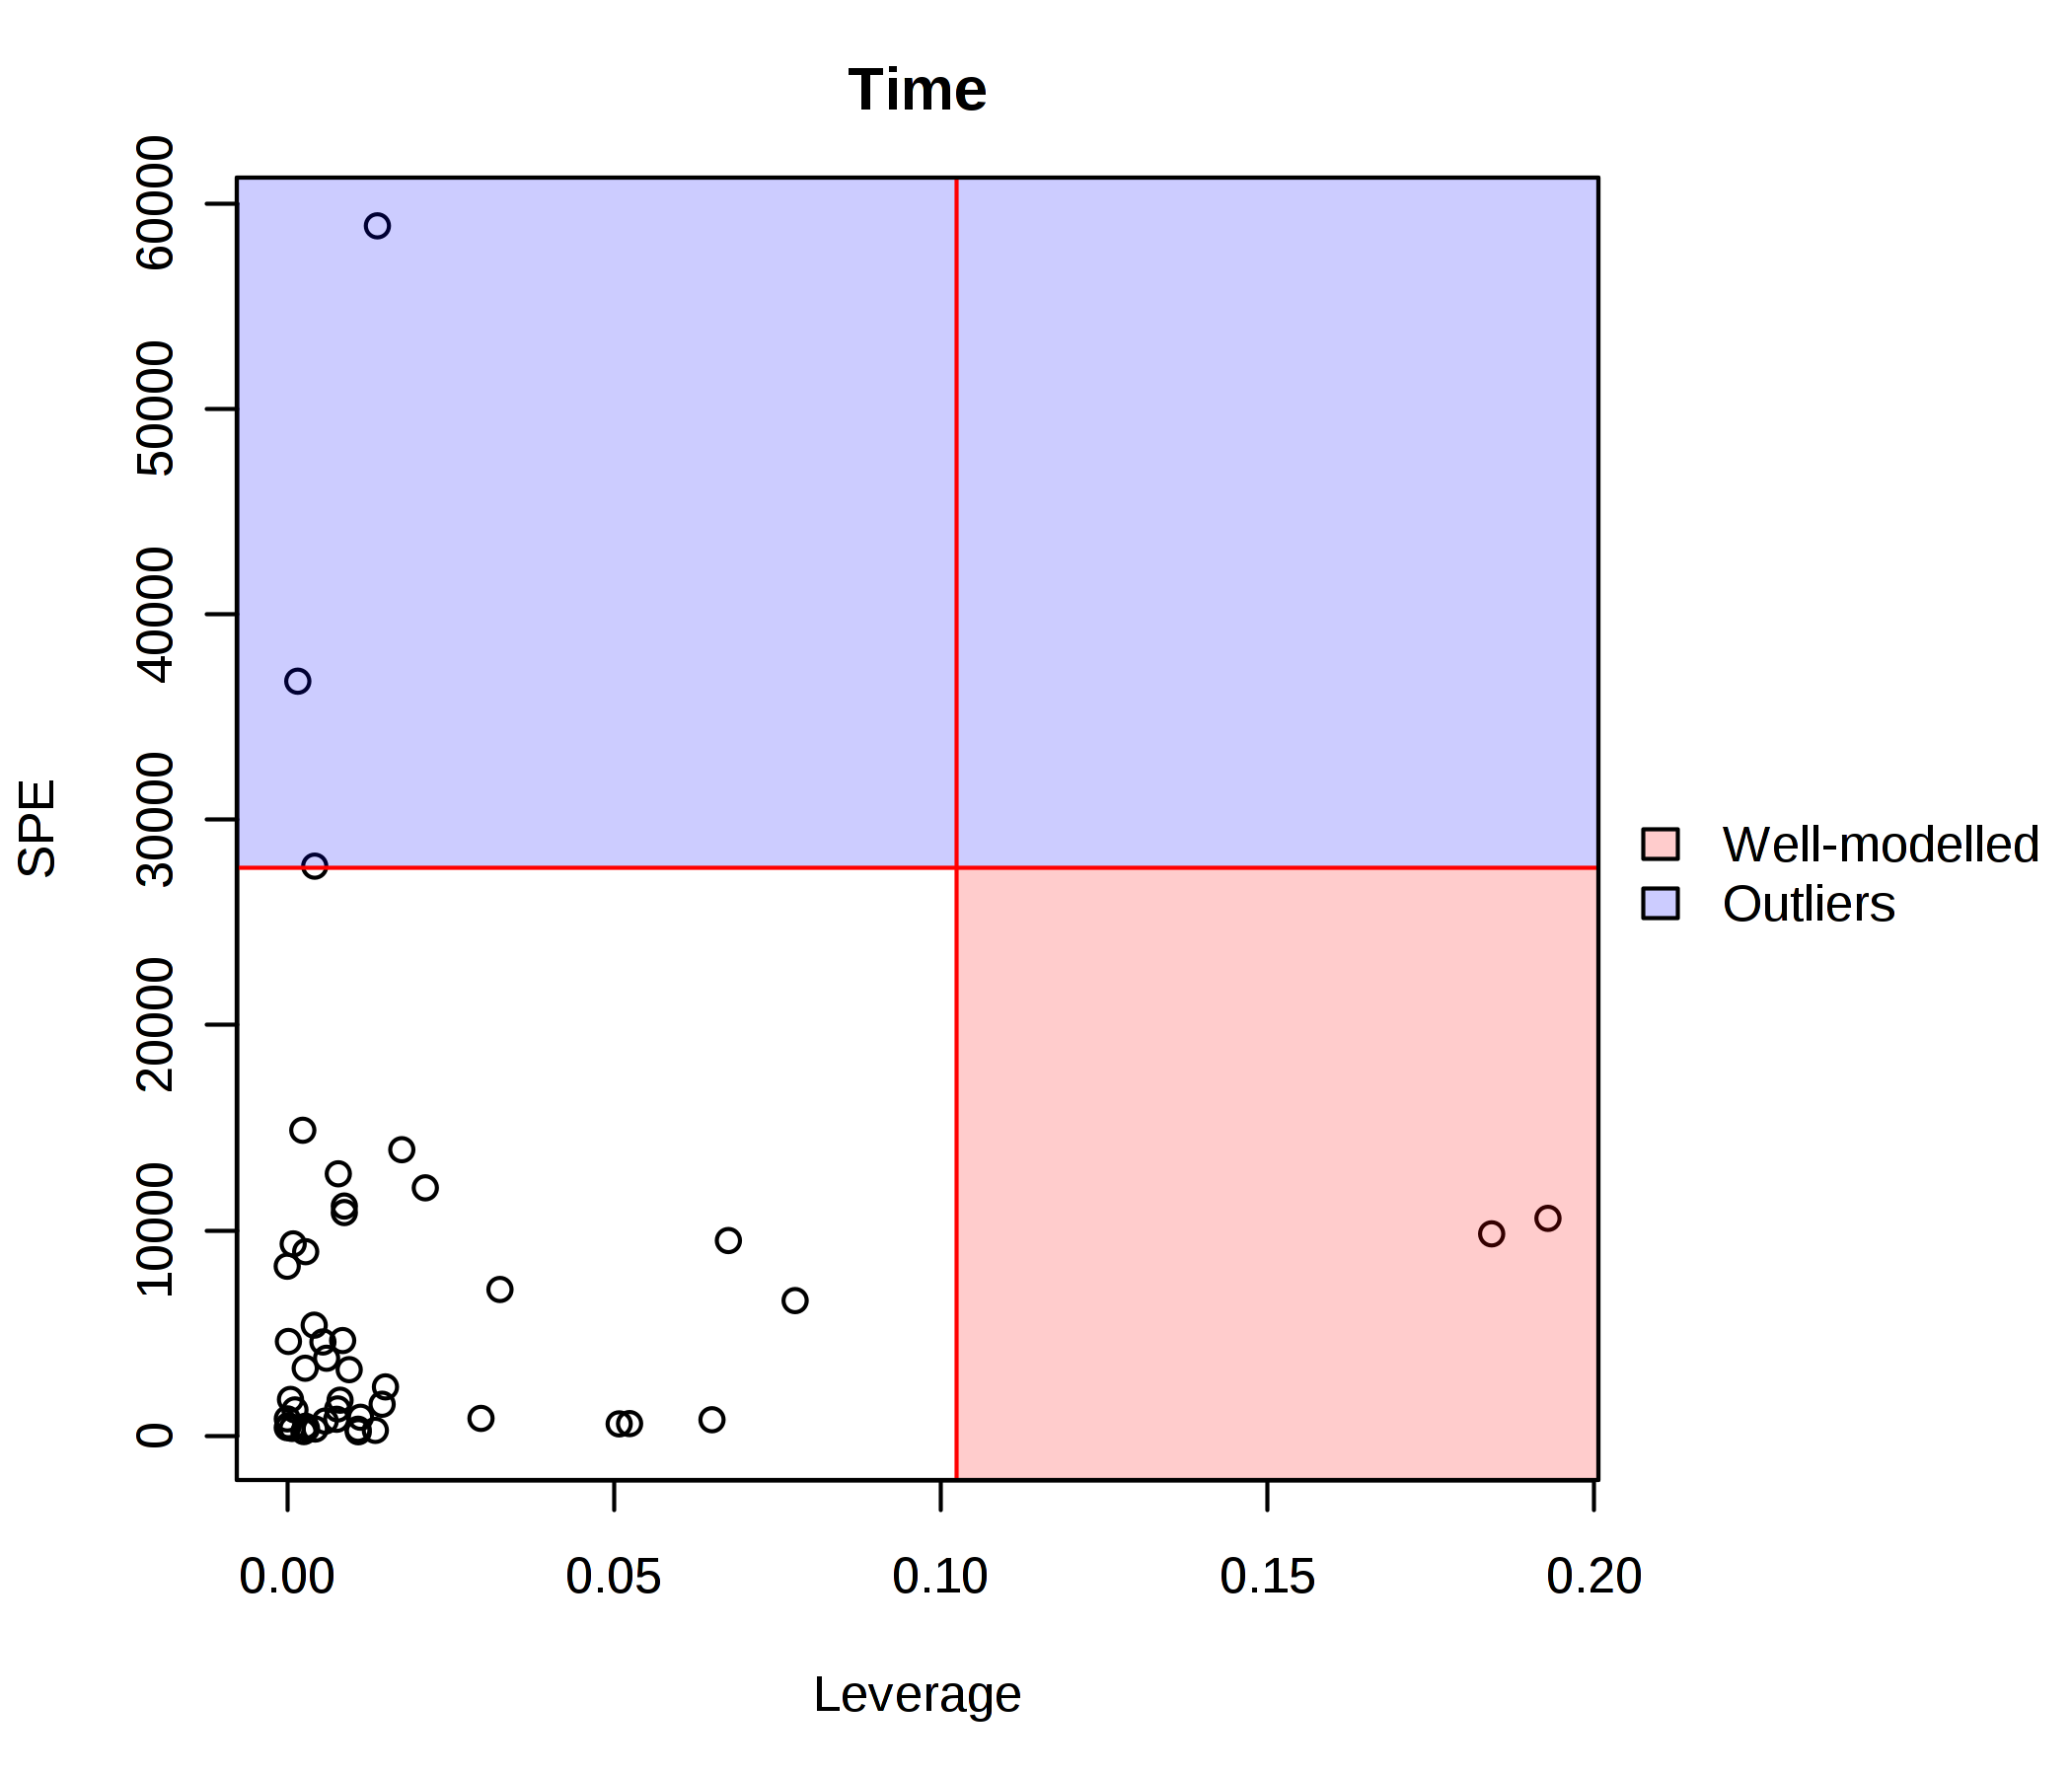 ASCA outlier x leaverage plot for time